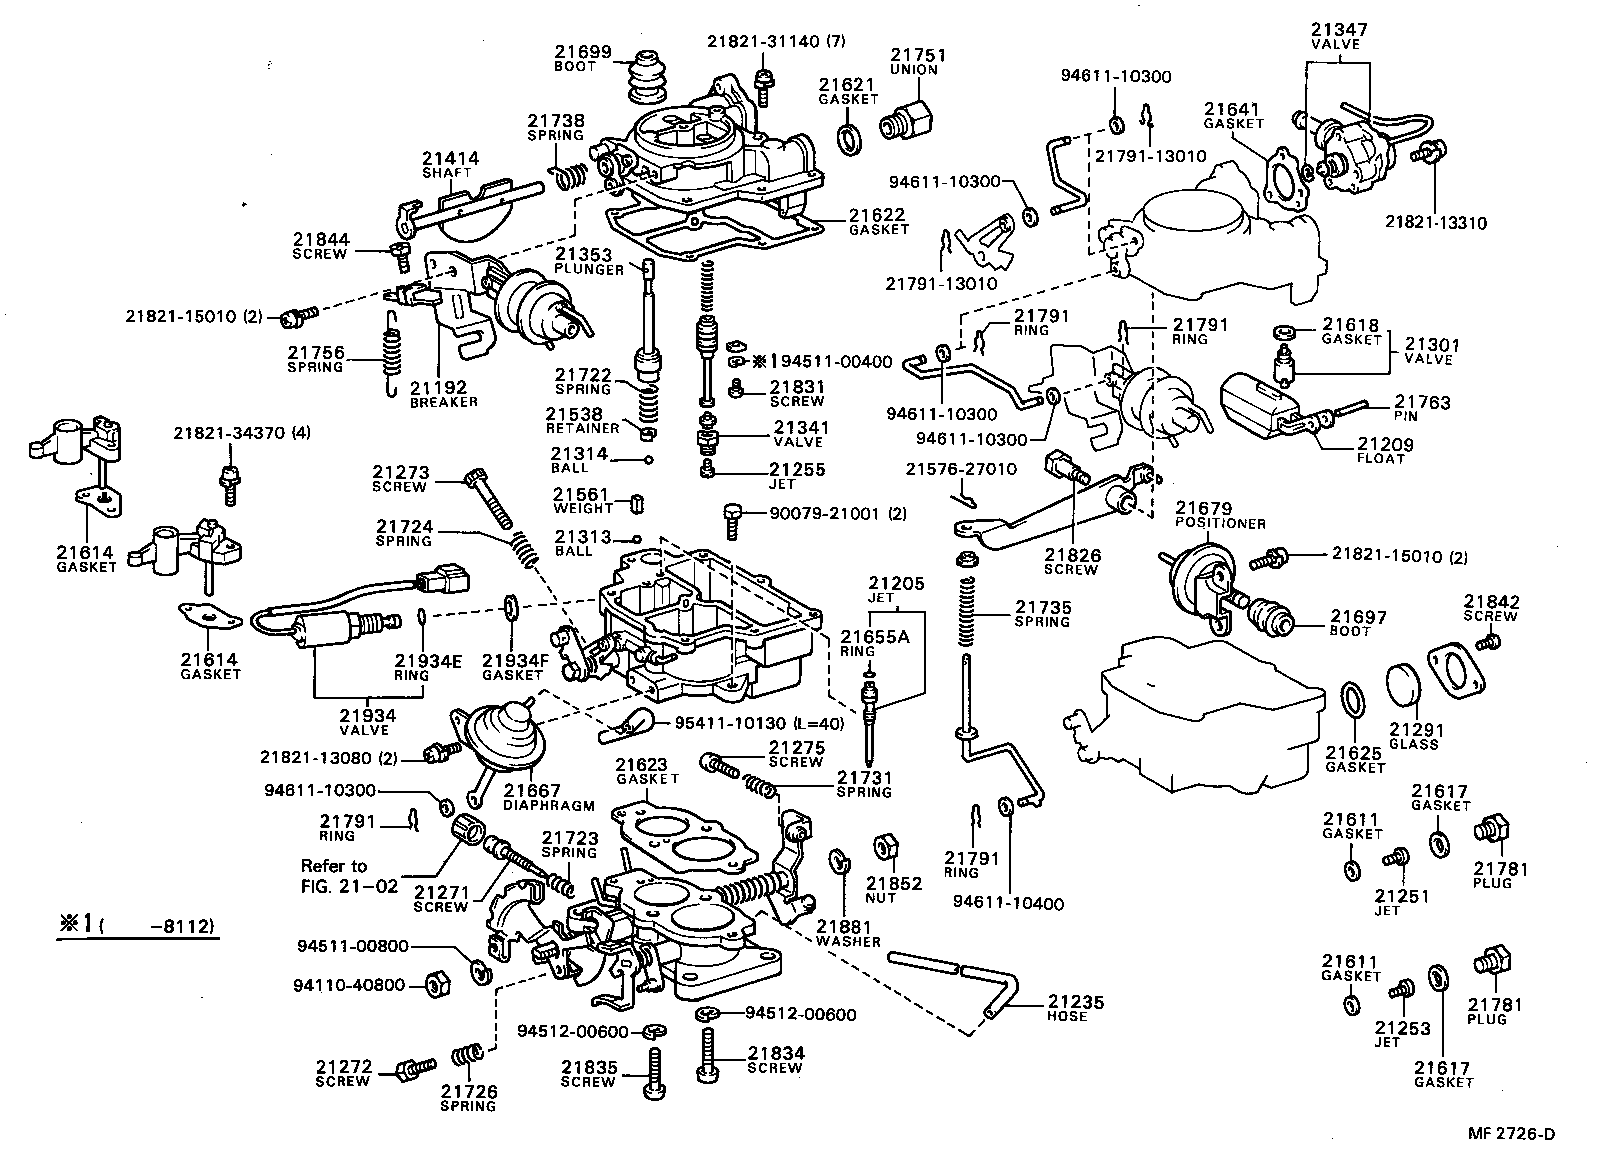 eu auto wiring diagrams eu wiring diagram collections nissan 350z knock sensor location nissan 350z knock sensor location together 2003 ford focus engine diagram